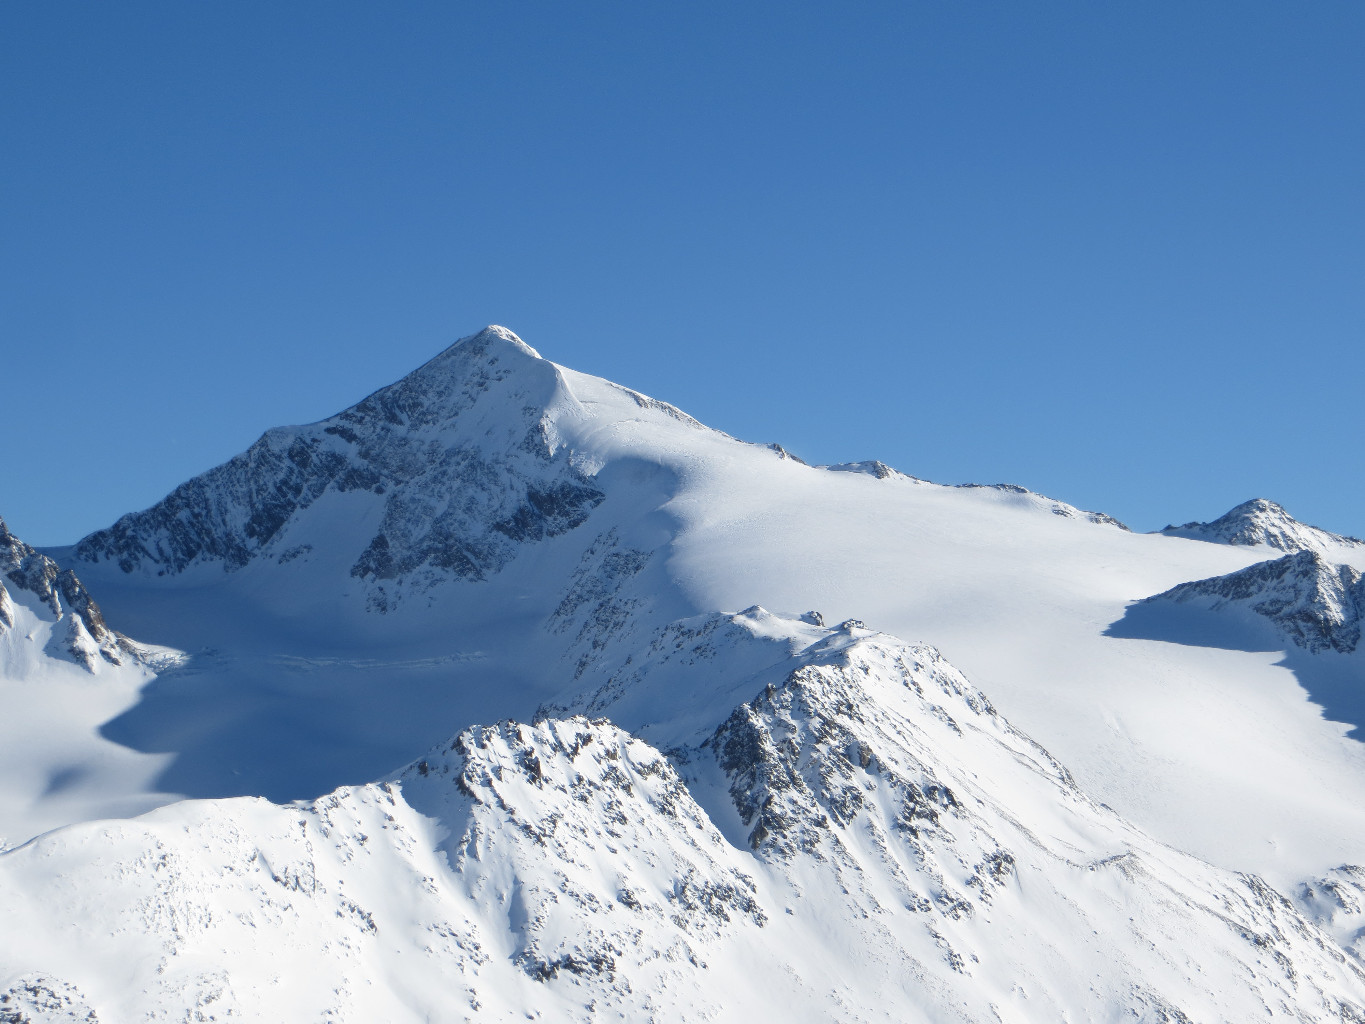 Similaun: North and West face